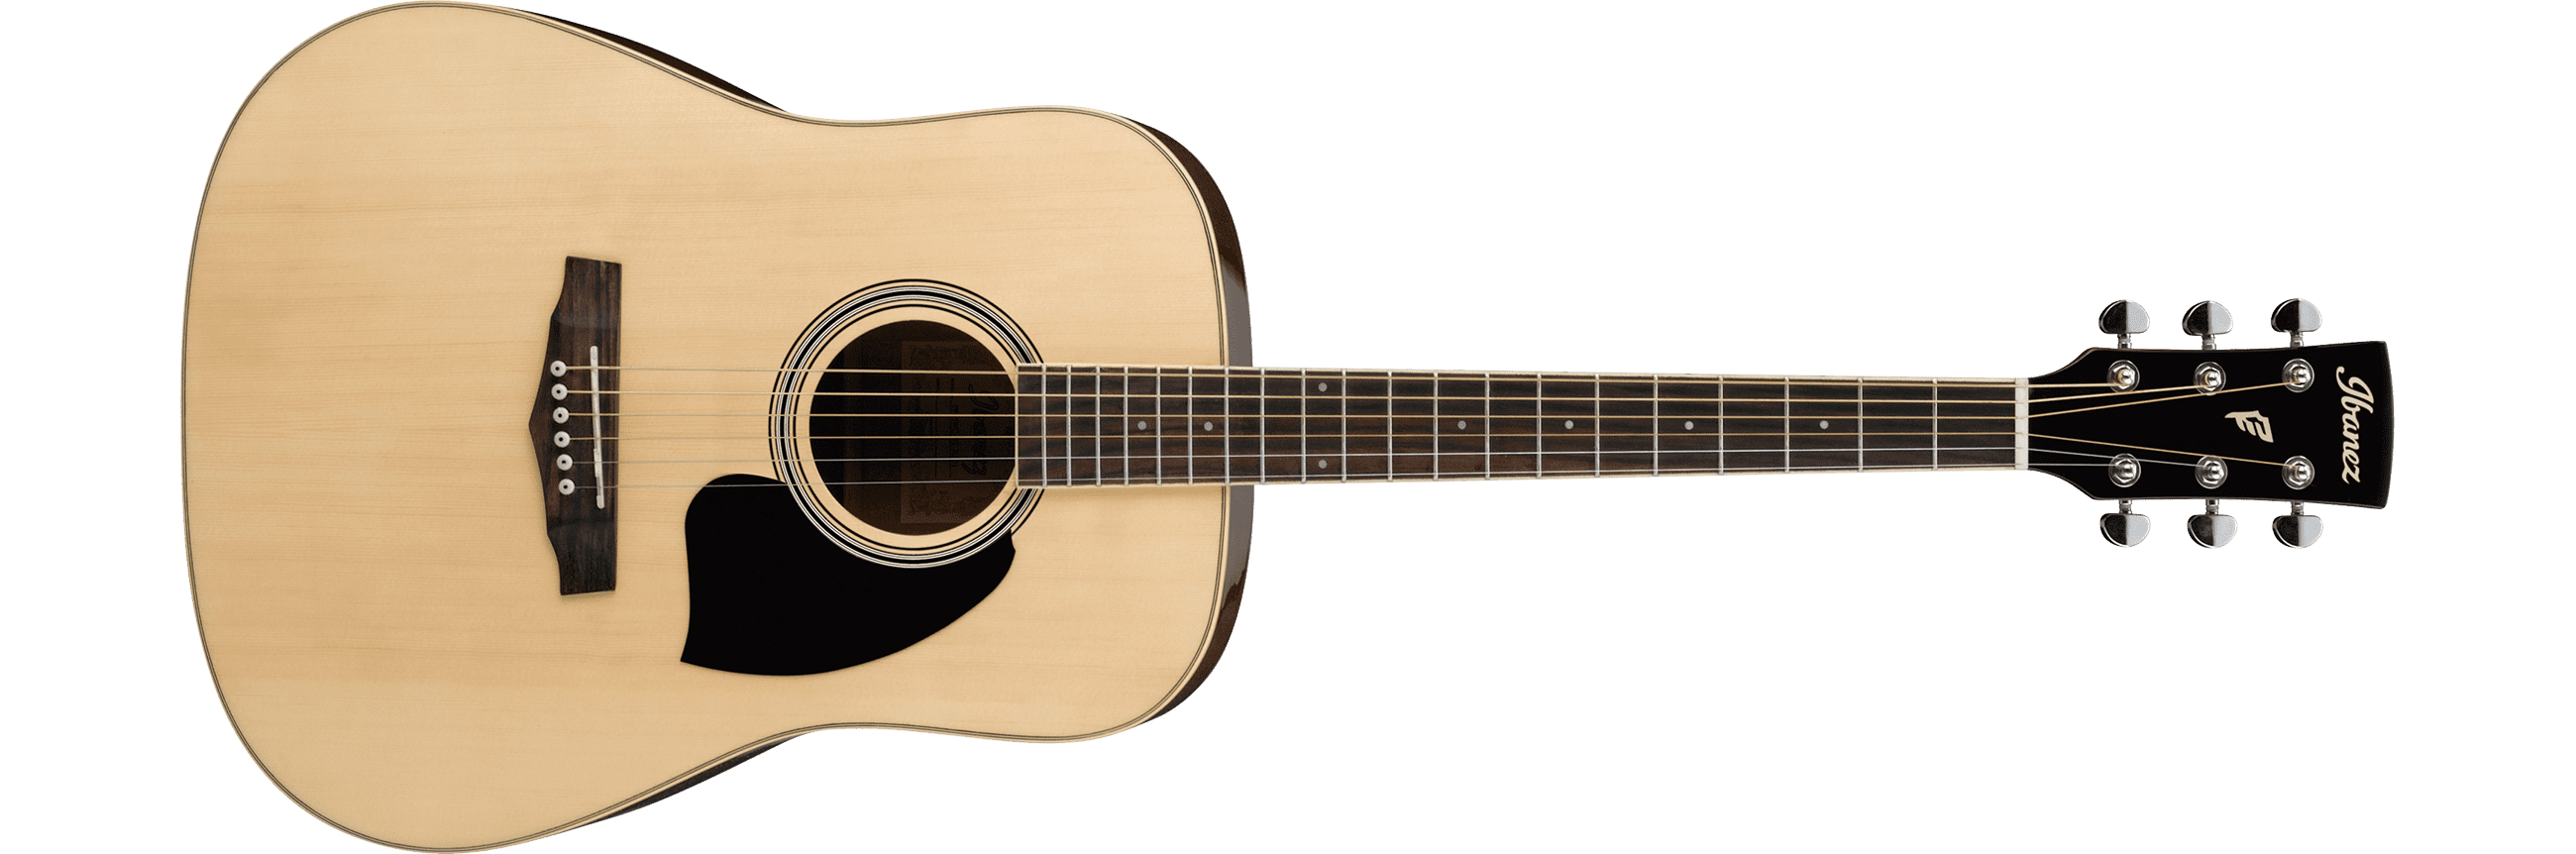 Ibanez PF15-NT Right-Handed Acoustic Guitar Natural Finish